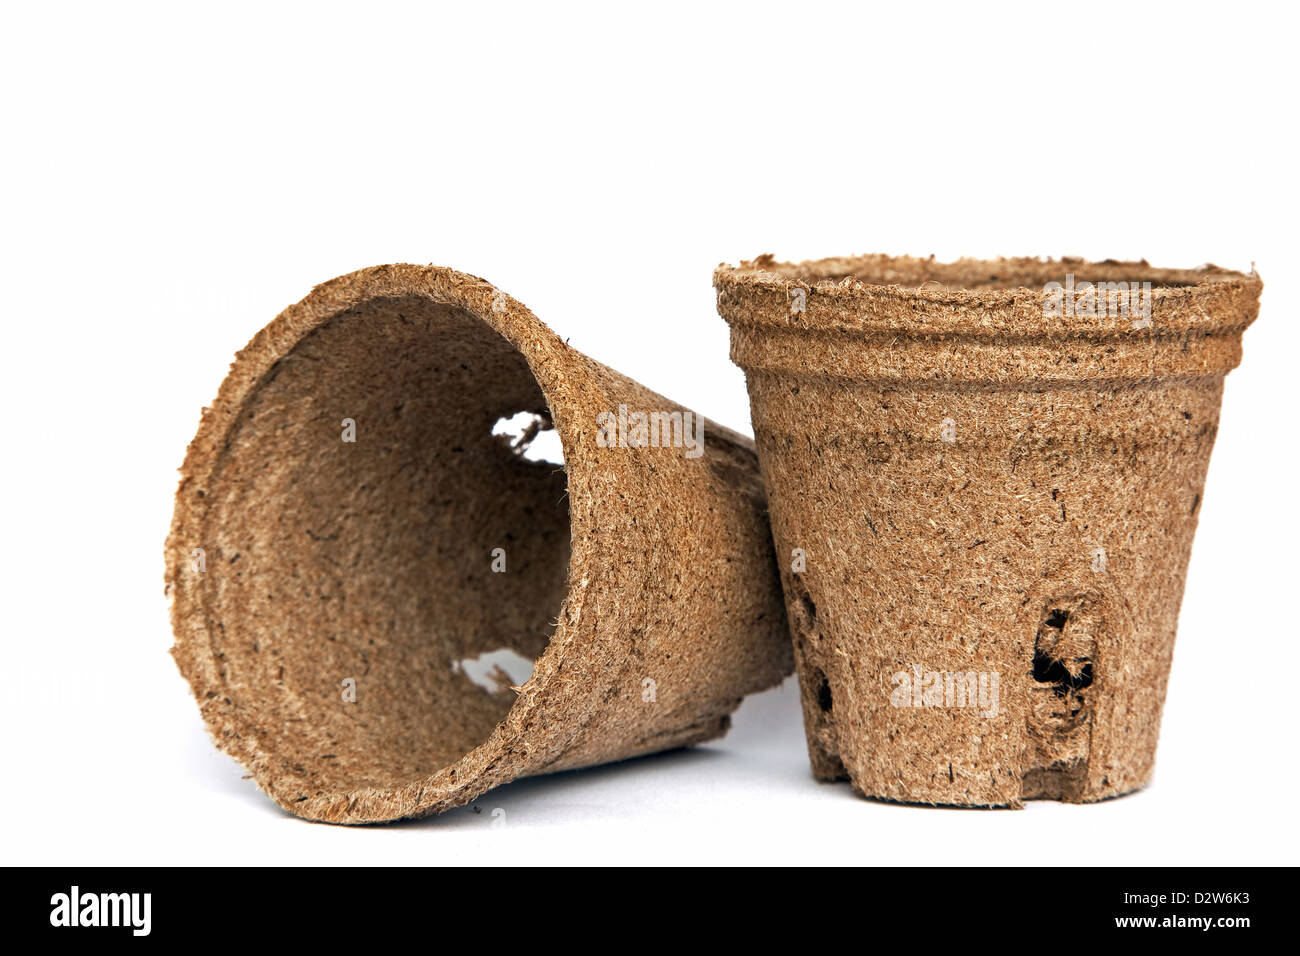 Peat pots for seedlings - Stock Image